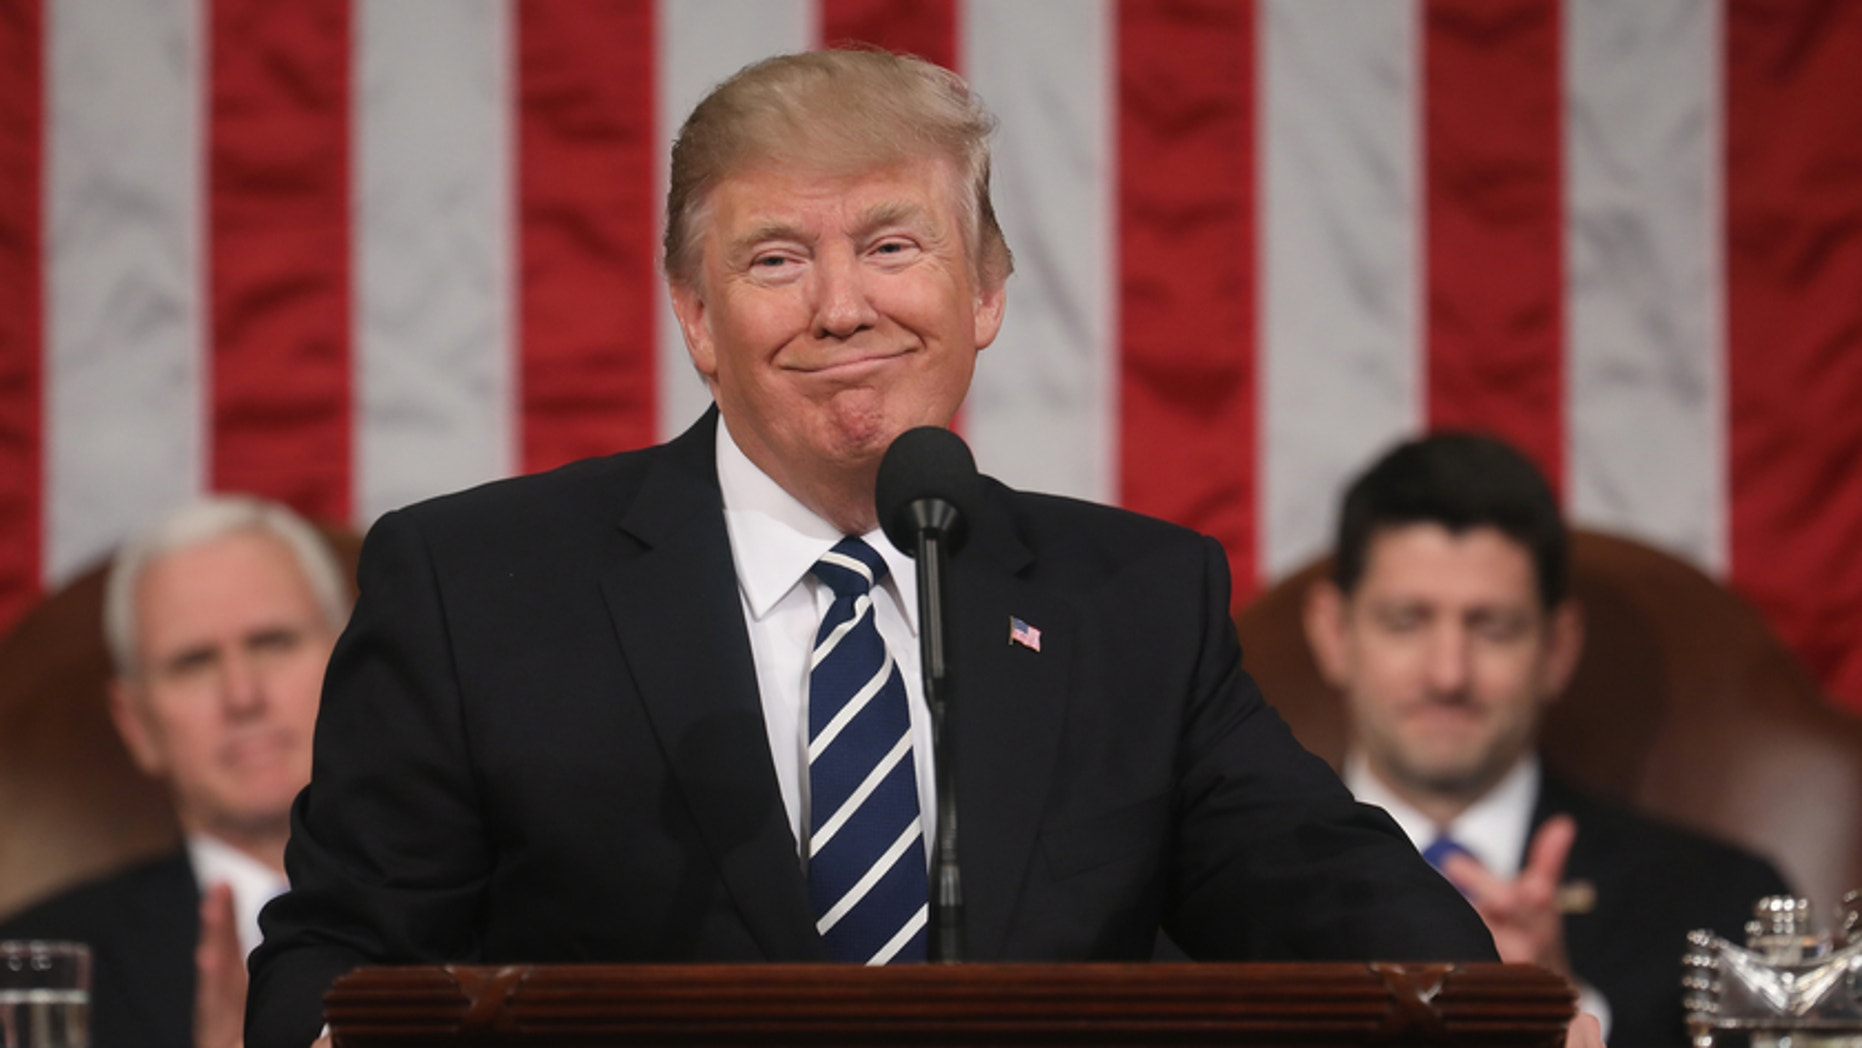 FILE -- President Donald Trump delivers his first address to a joint session of Congress from the floor of the House of Representatives iin Washington, February 28, 2017.